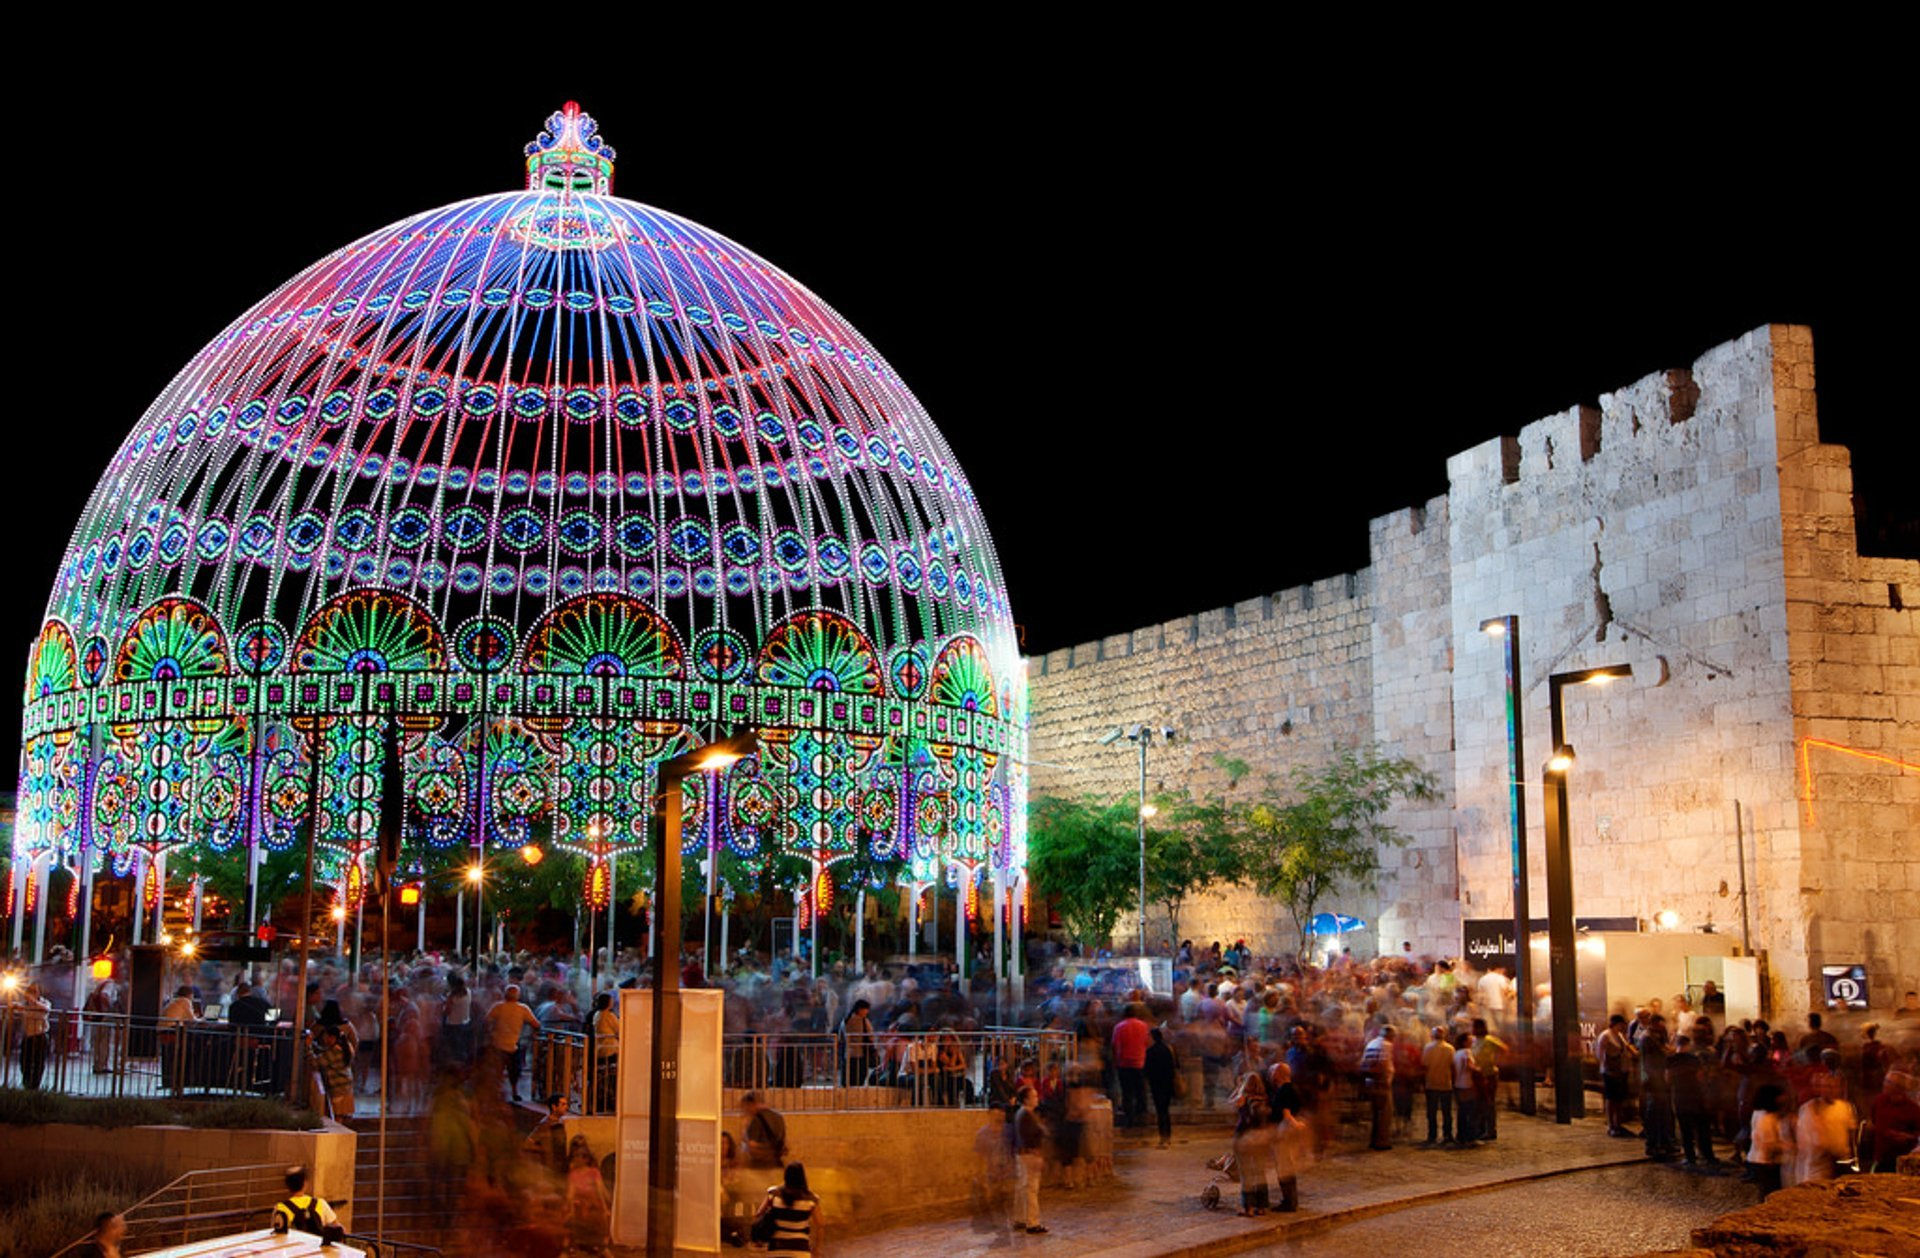 Jerusalem Light Festival in Israel 2019 - Best Time